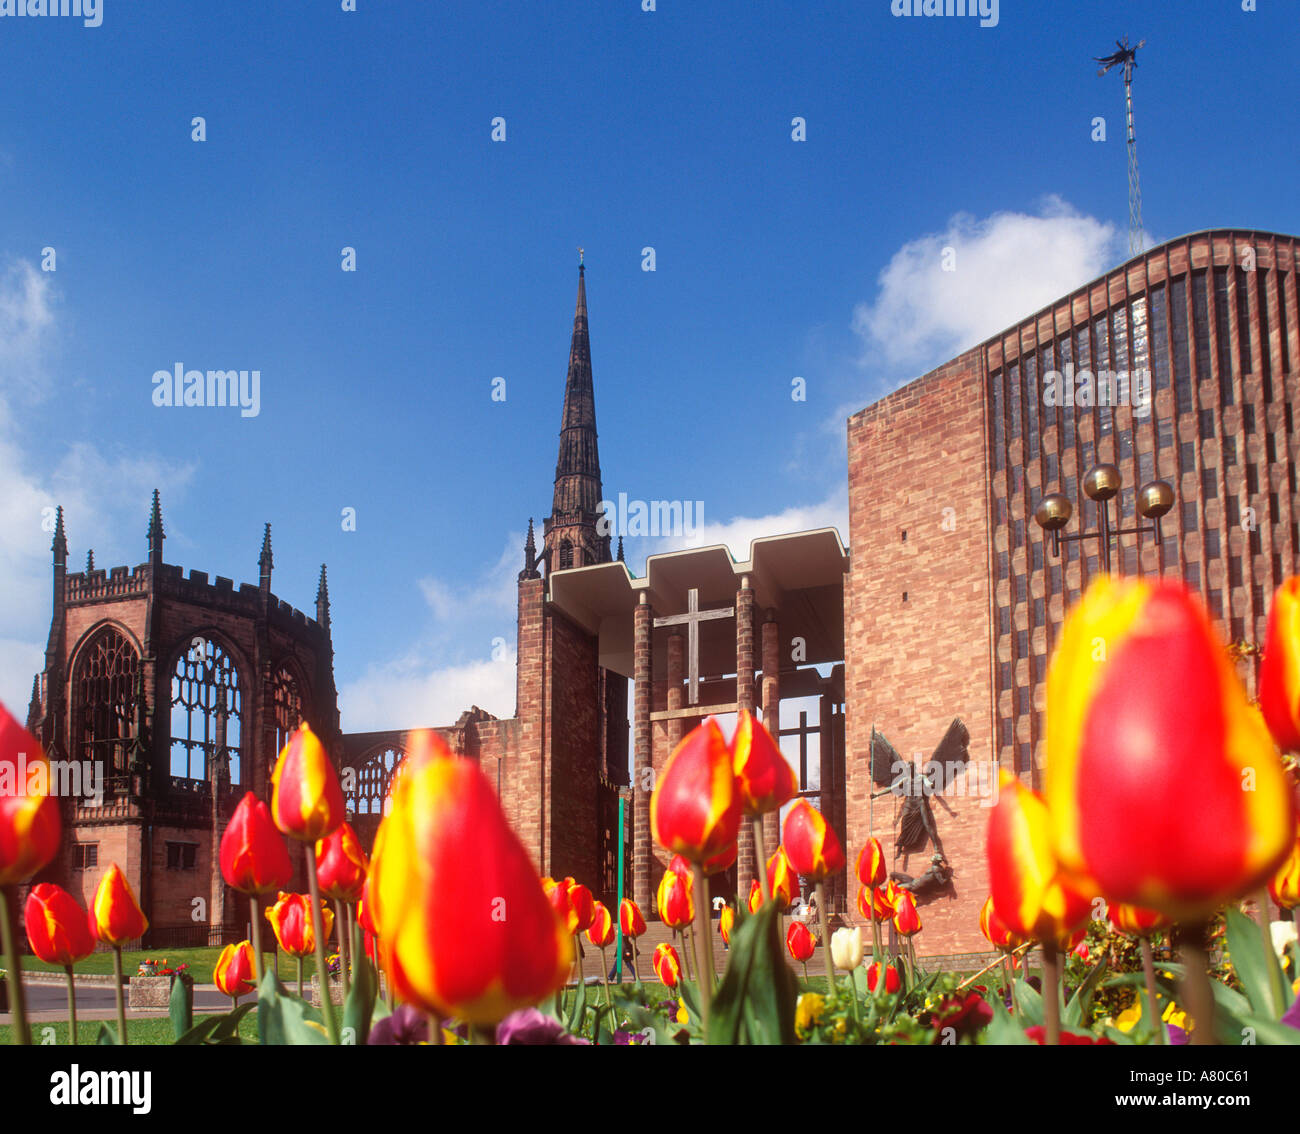 Places To Visit Coventry Uk: Coventry Architecture Stock Photos & Coventry Architecture